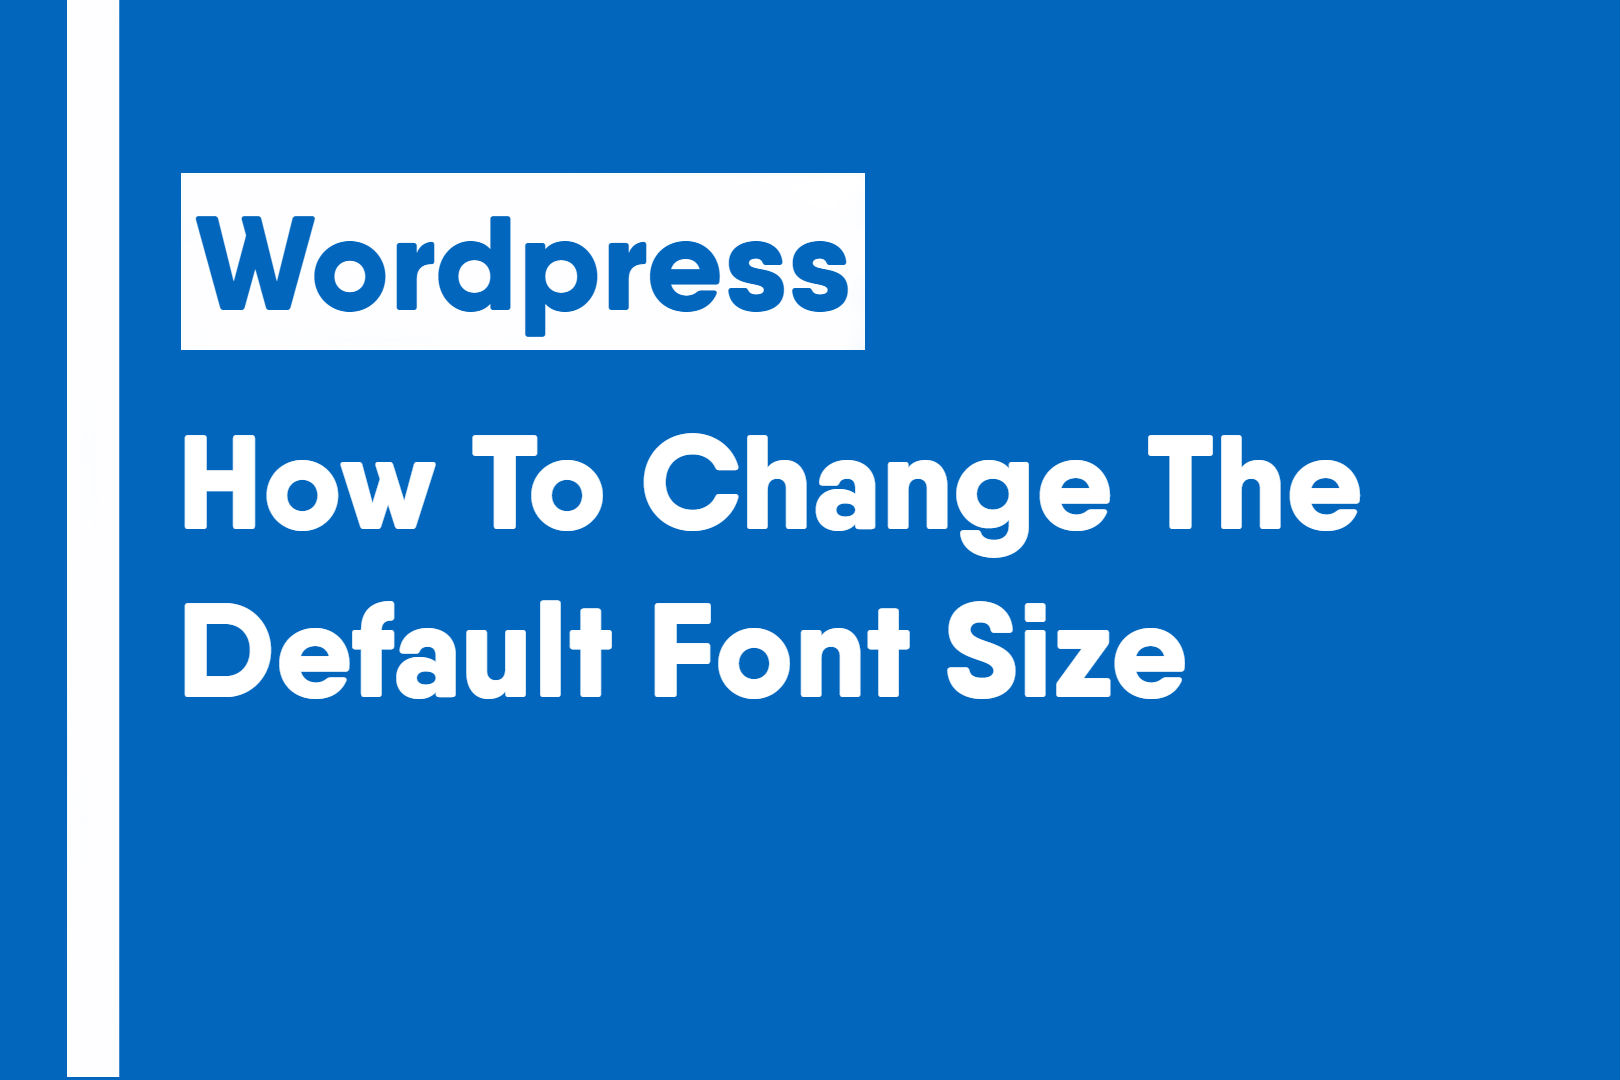 How to change the default font size